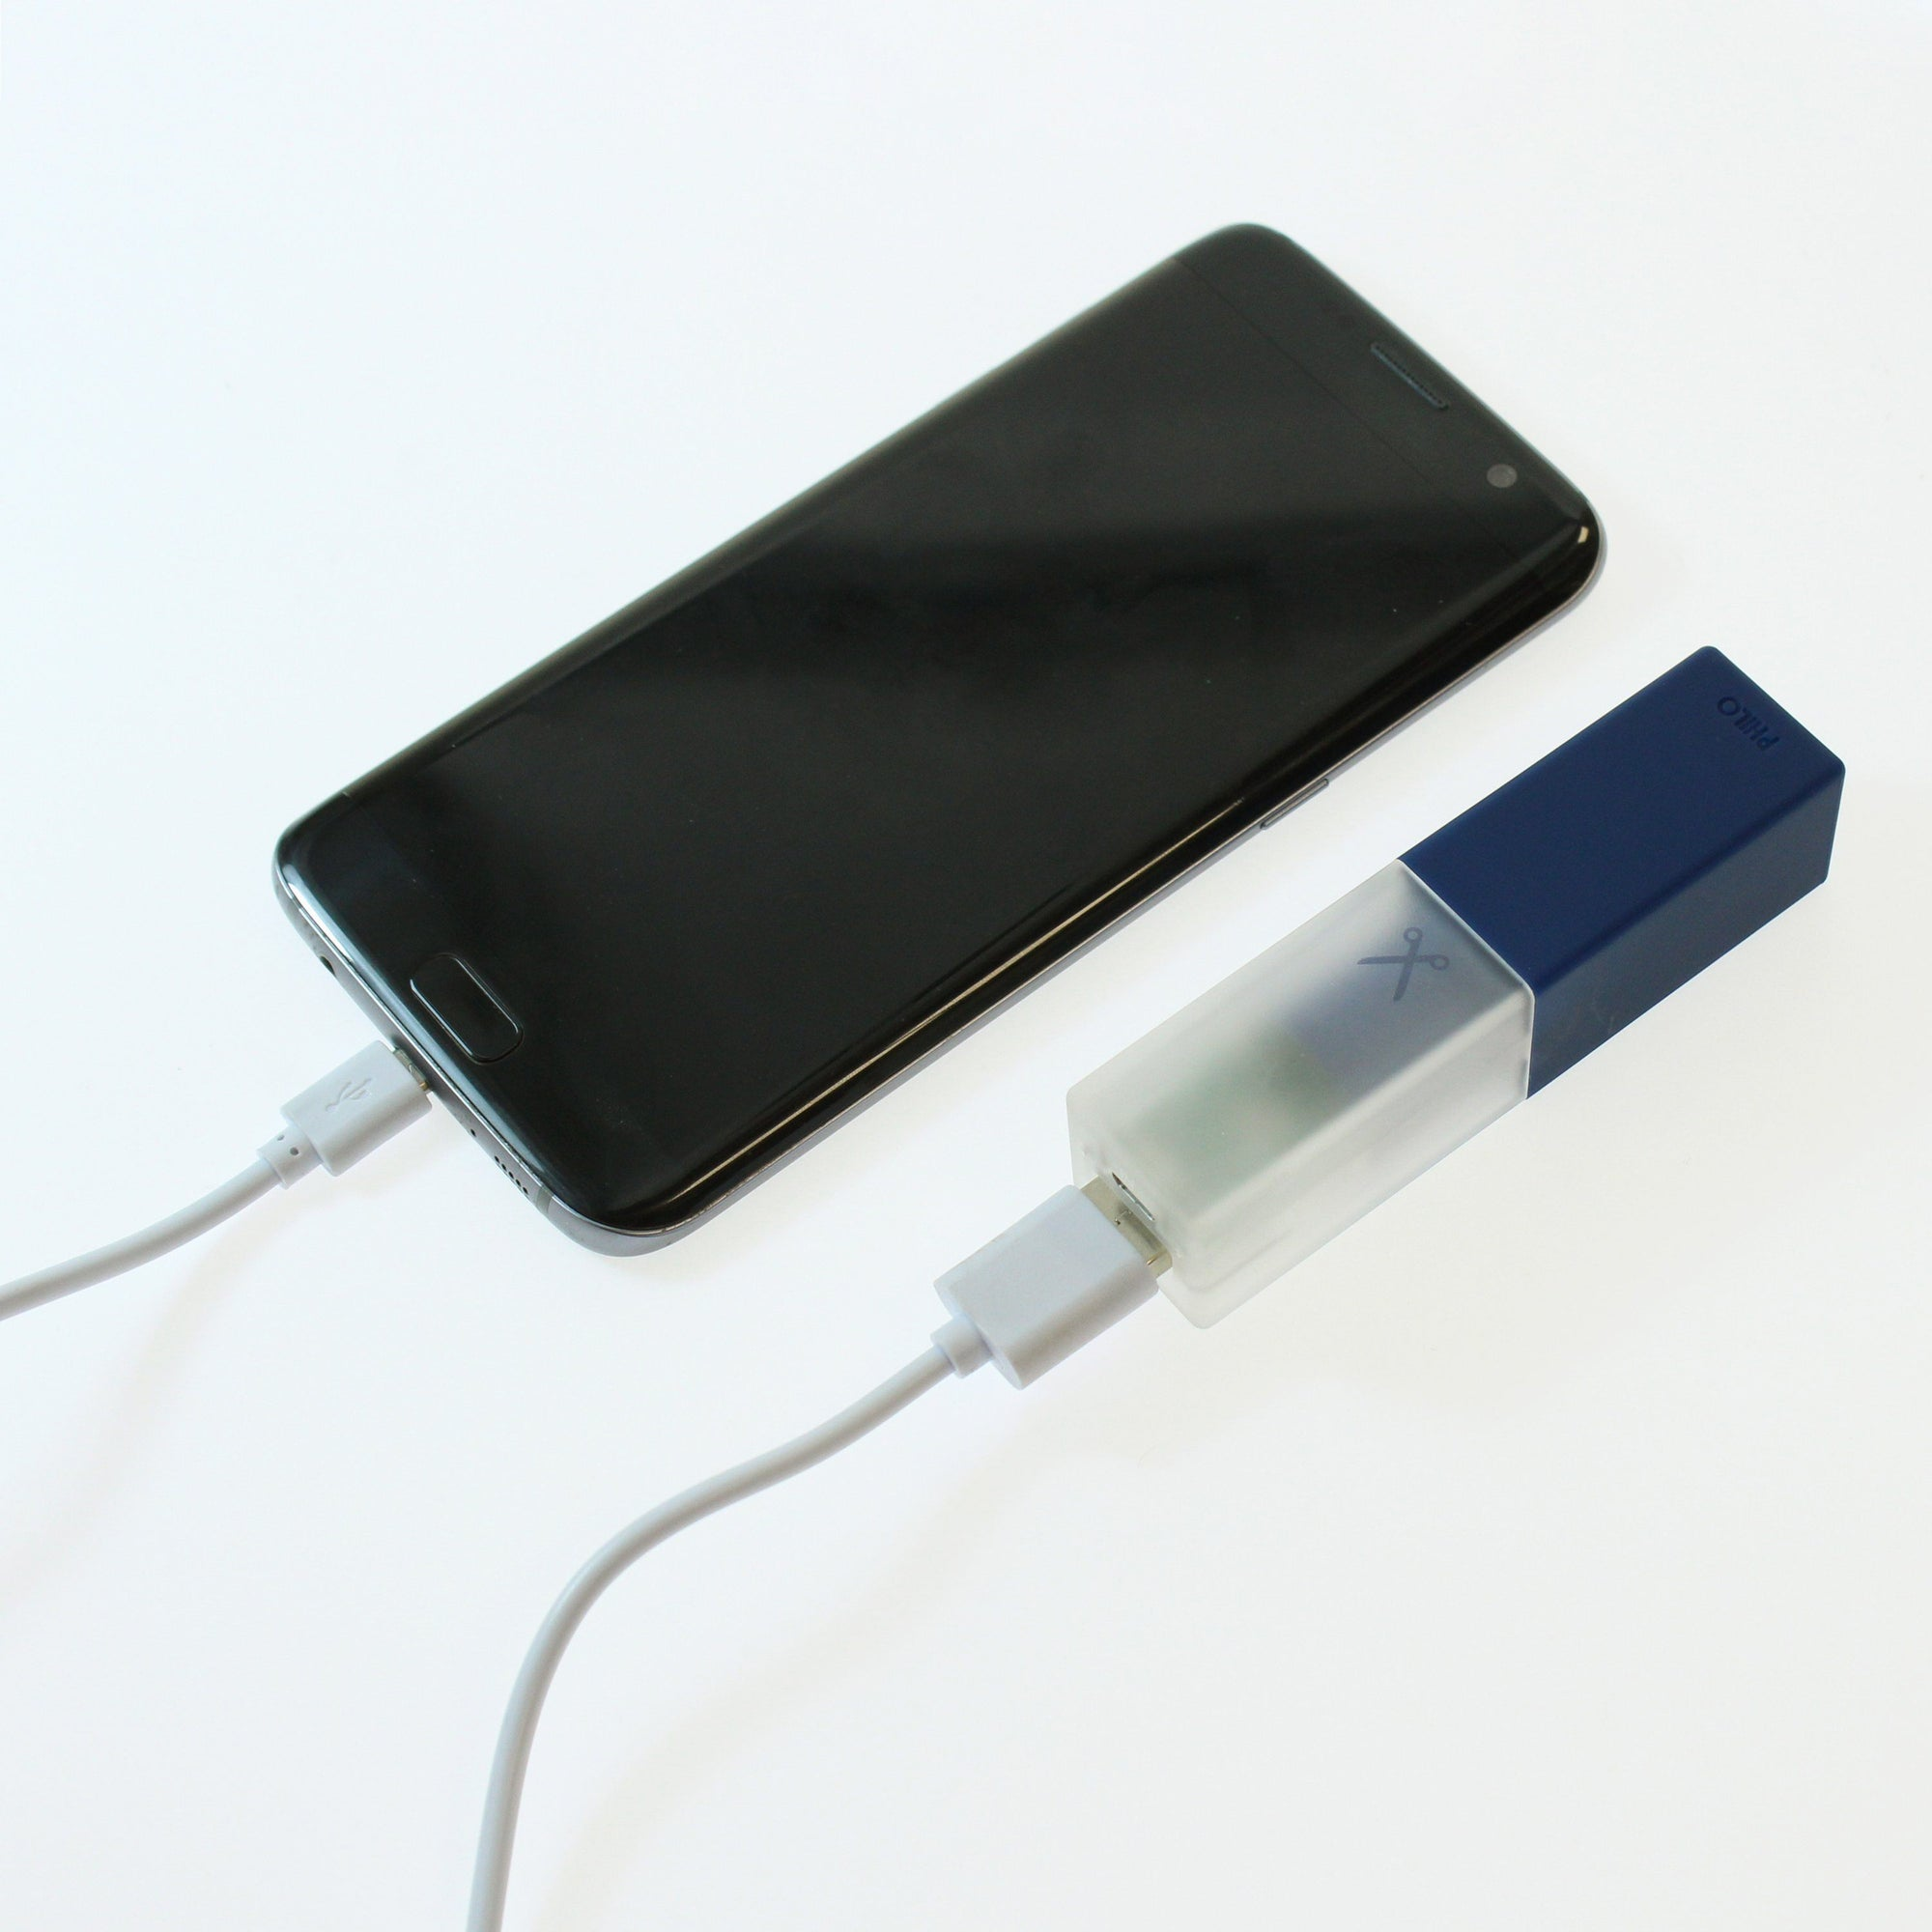 Travel Smartphone Power Bank: Blue Powerbank Go Philo - der ZEITGEIST